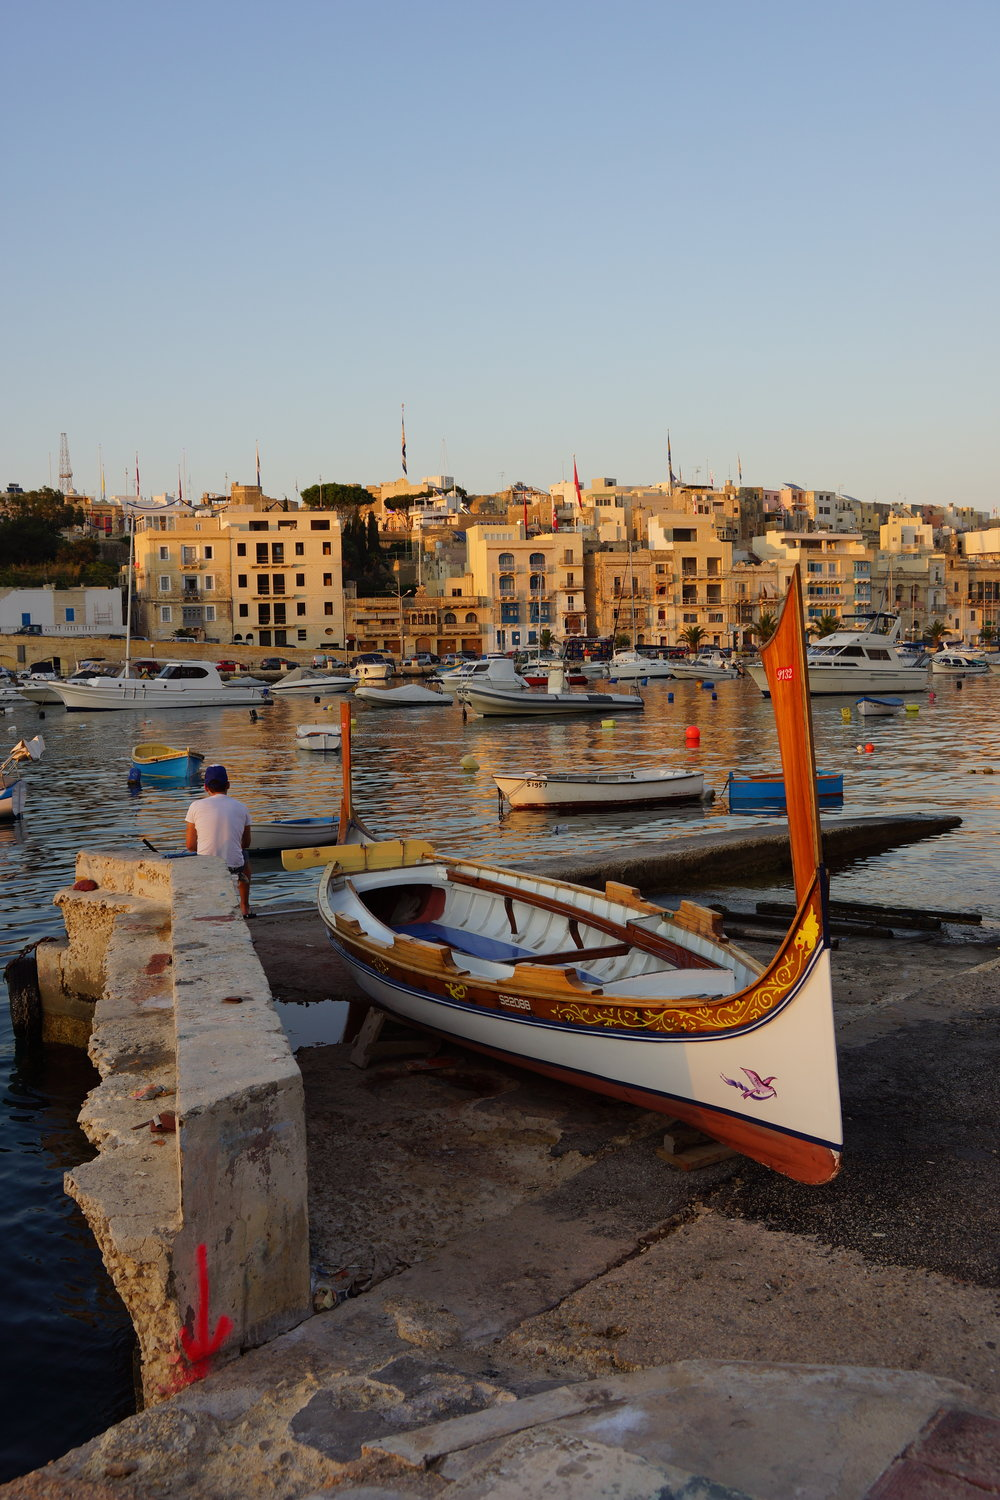 My home, the Kalkara Bay.